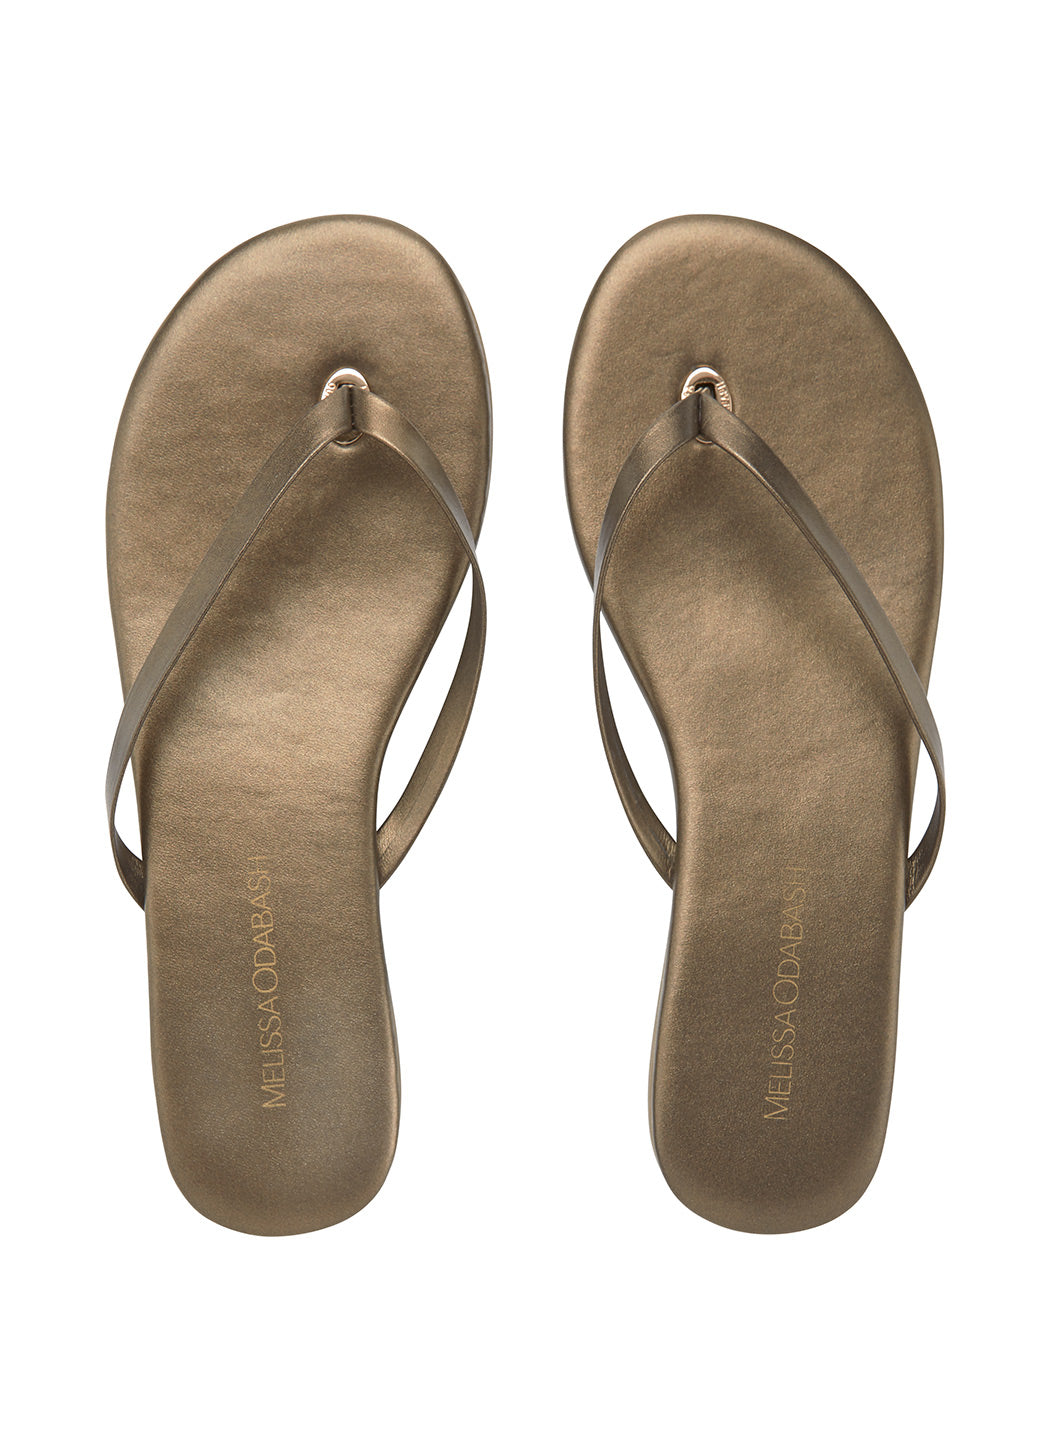 Leather Flip Flops Bronze - Melissa Odabash Leather Flip Flops